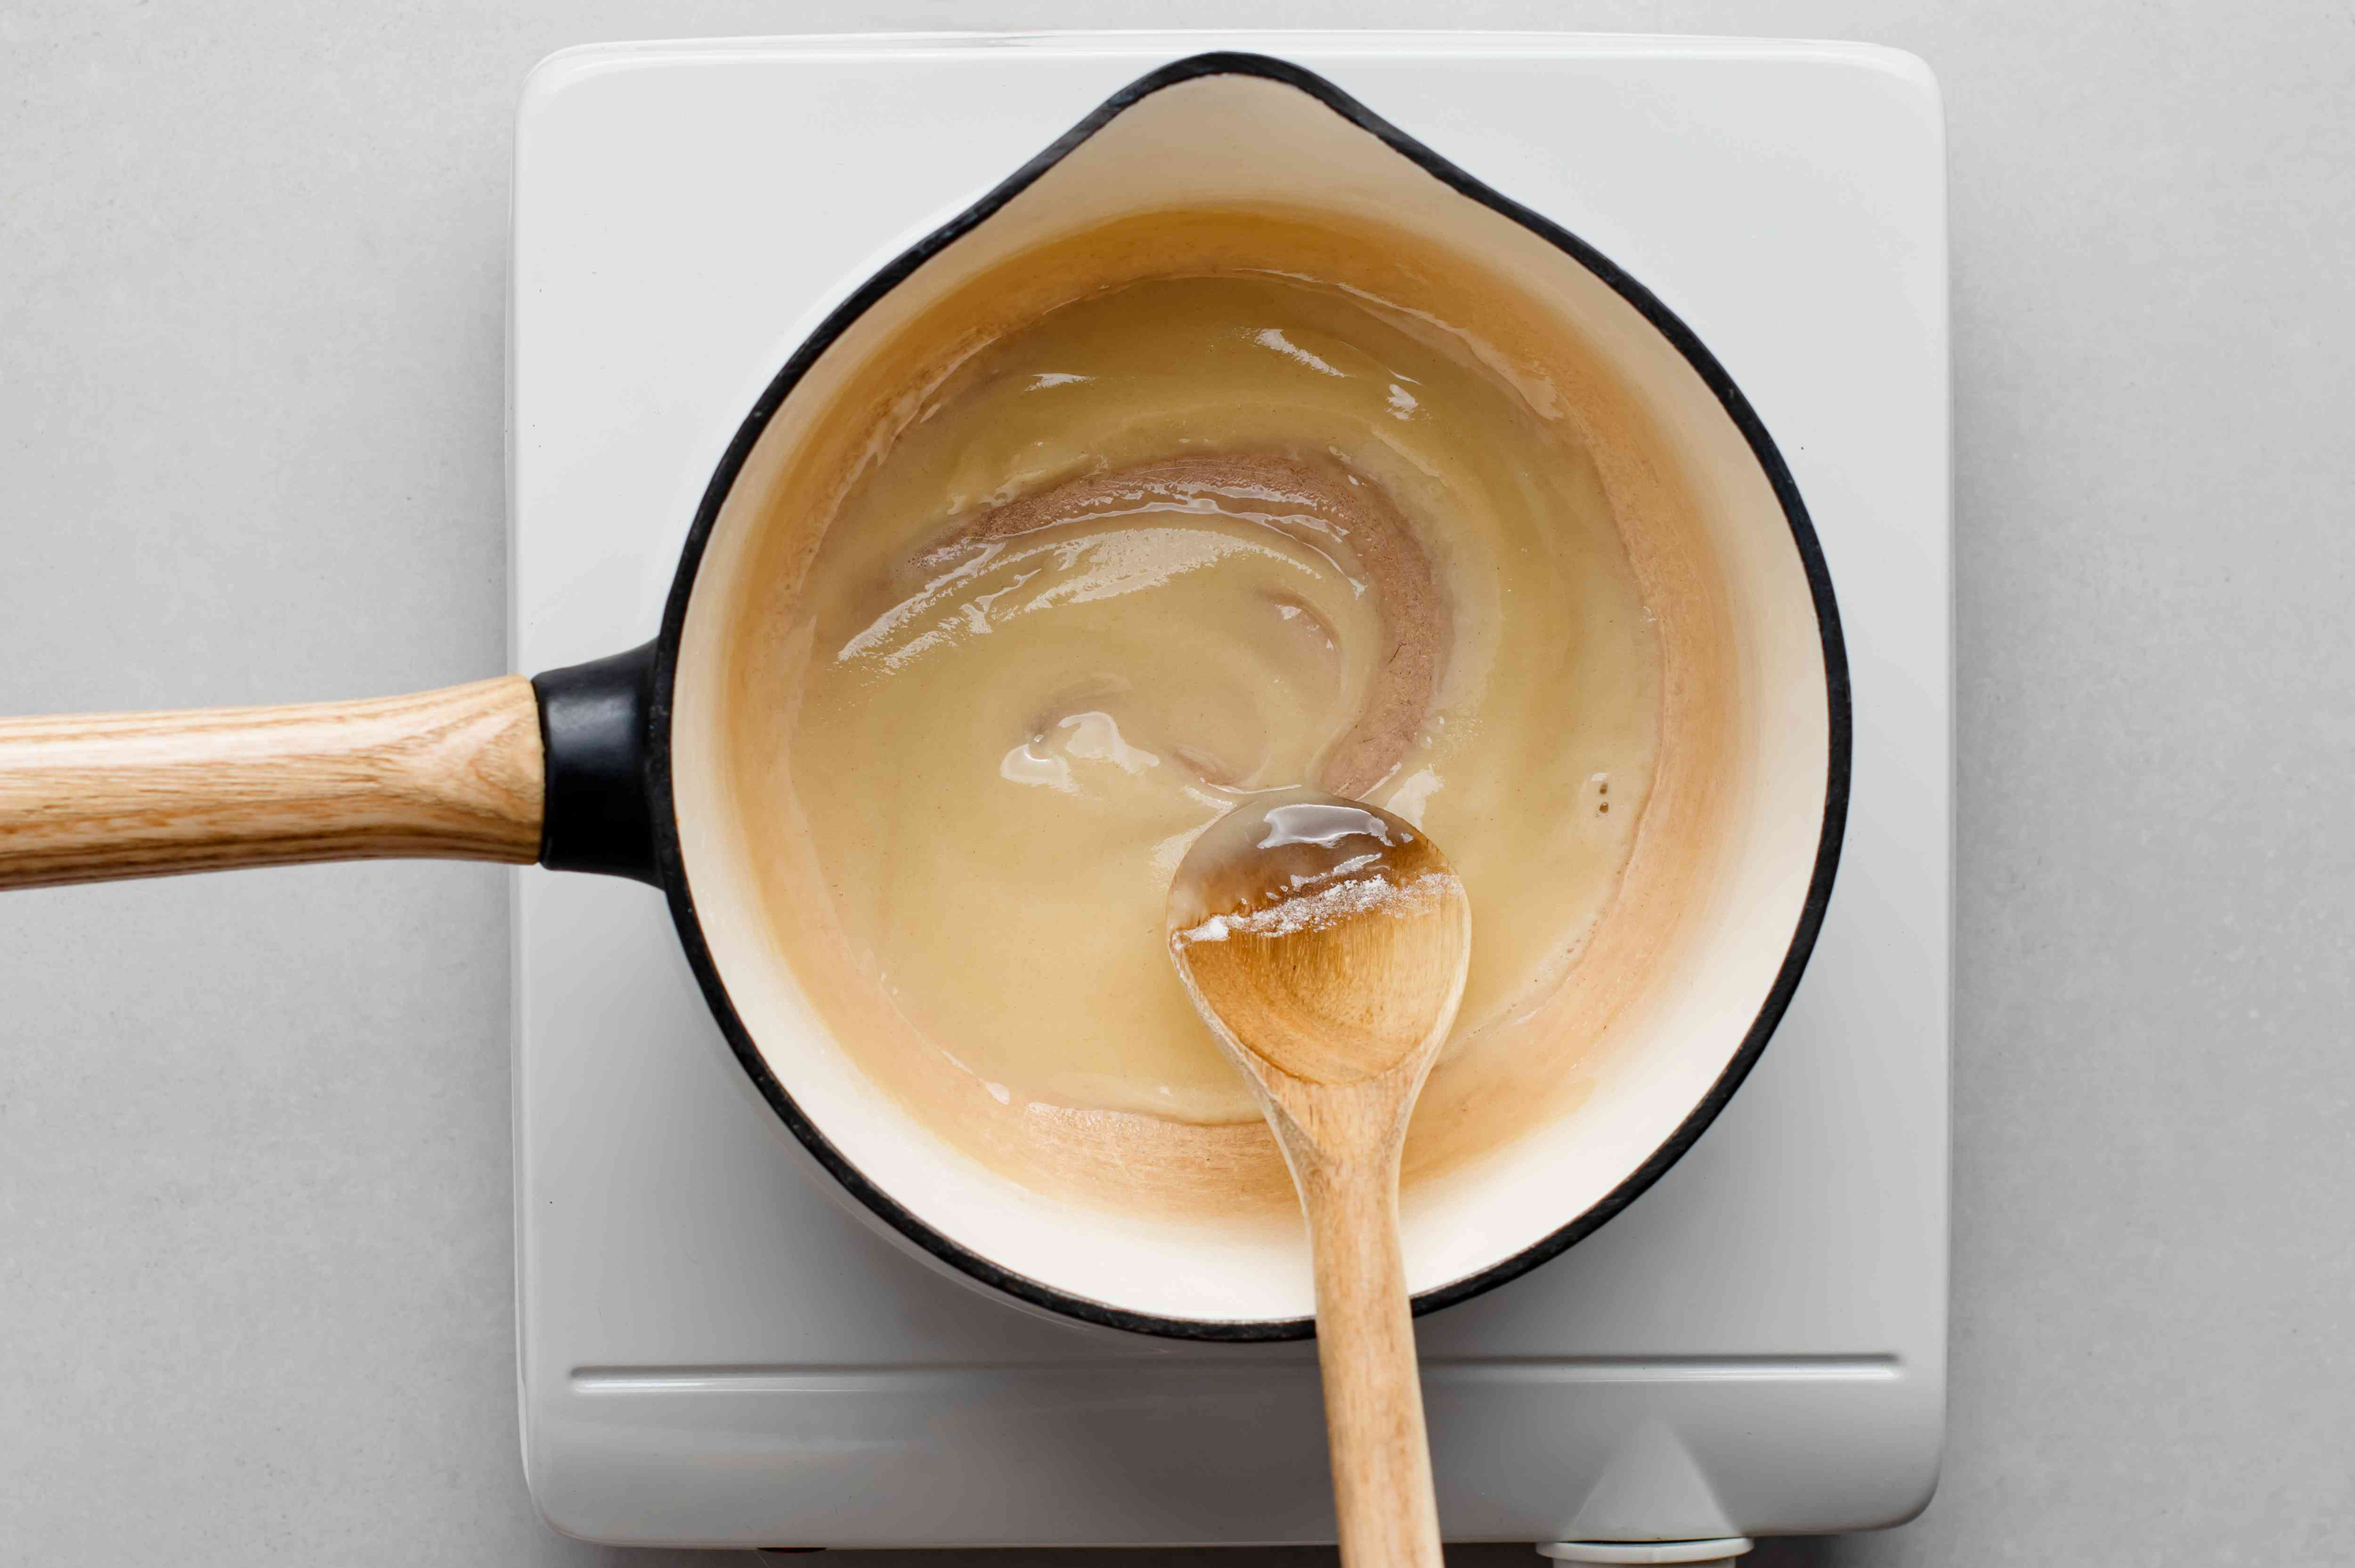 flour and oil in a pan, roux in a pan